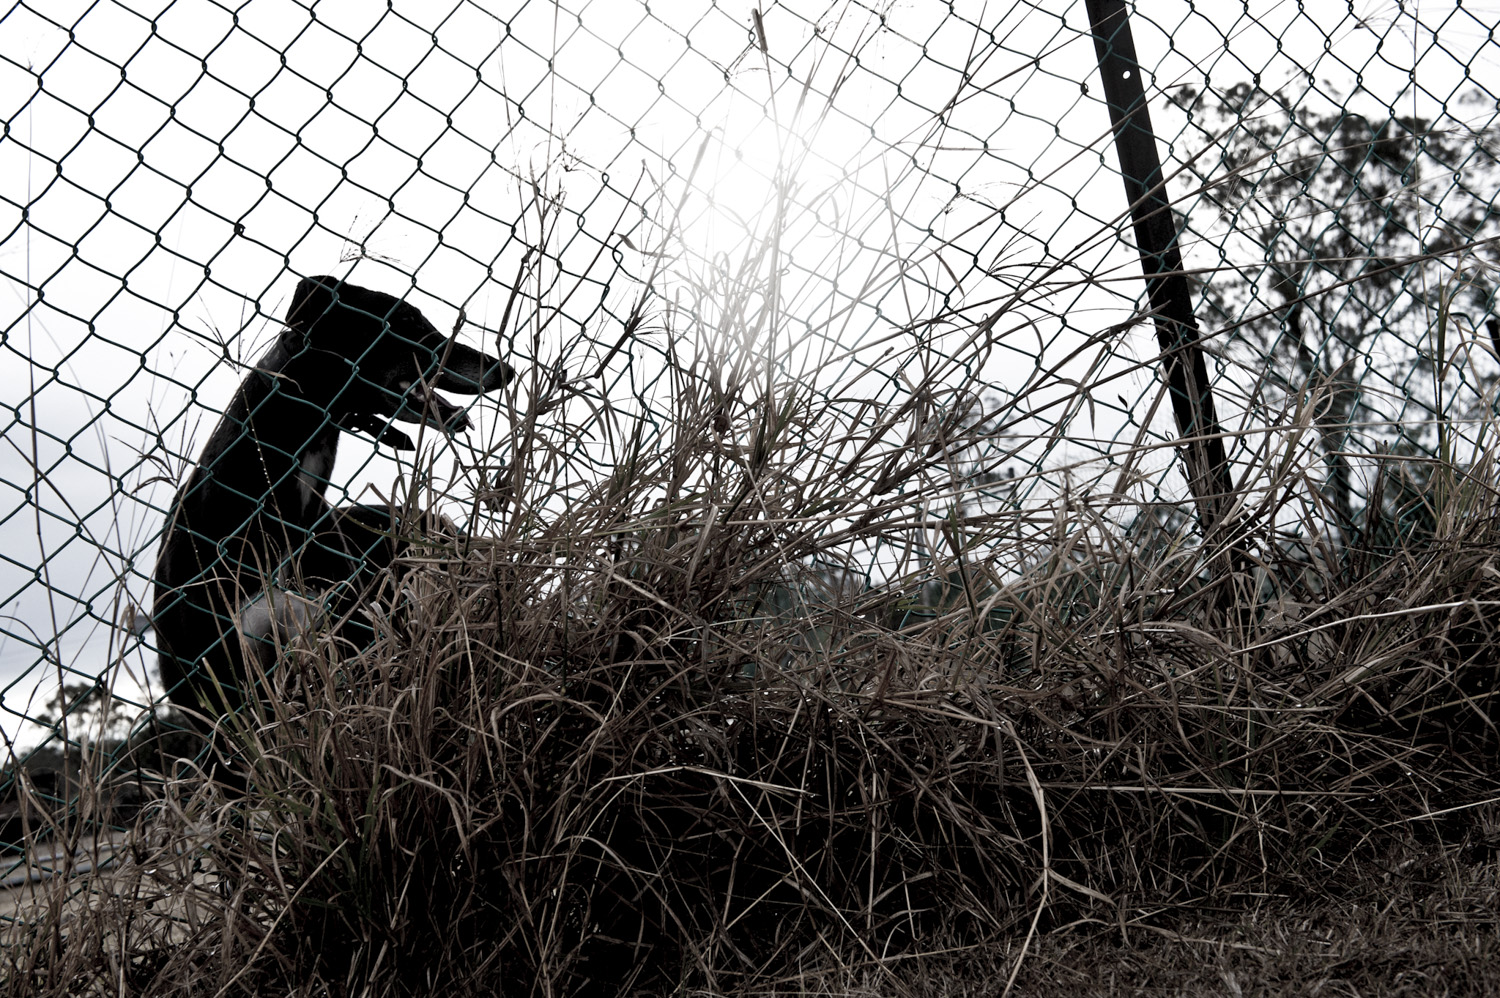 image of AARONTAIT COPYRIGHTED 2014 430 DOCUMENTARY PHOTOGRAPHER REPORTAGE LIFE SPORT DOGS GREYHOUND RACING STORY HUMAN DISHLICKER DISH LICKER BLACK DOG FENCE BLACKDOG